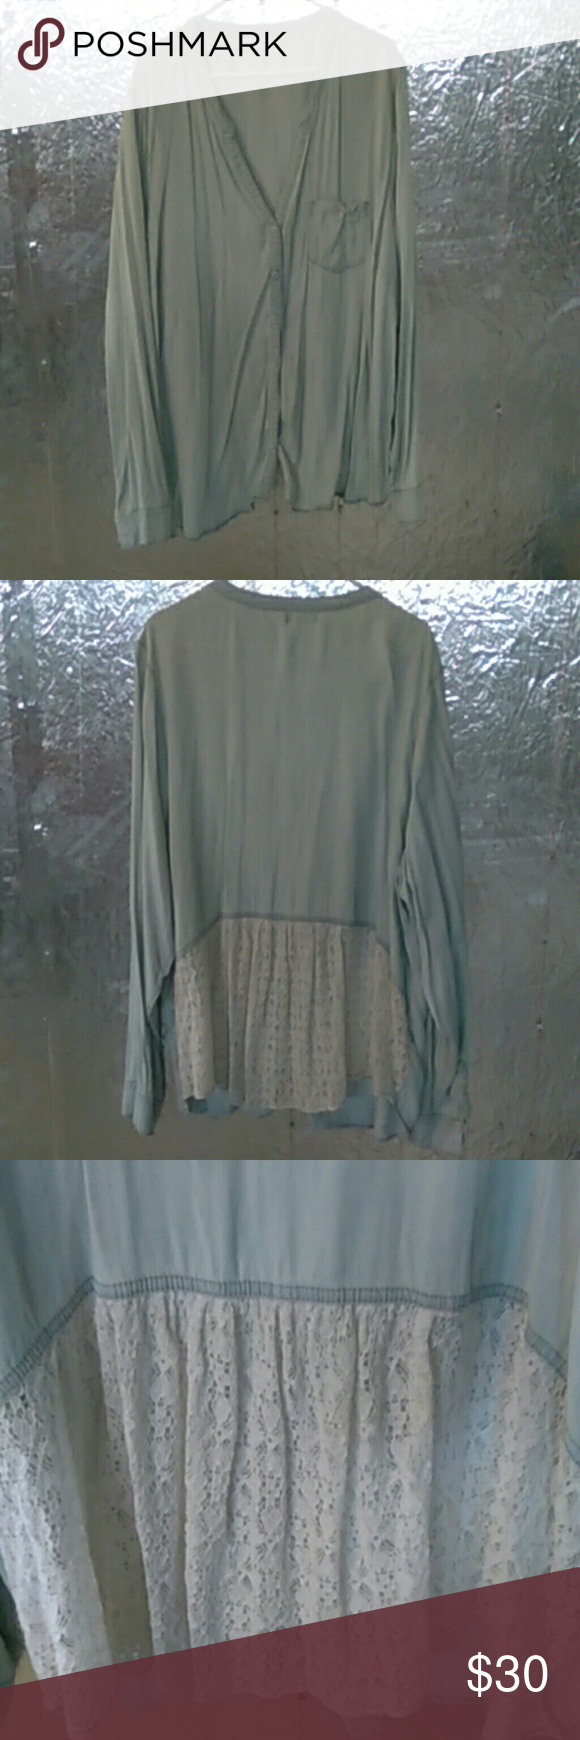 Maurices Top Long sleeve button up top with lace back. Has one front pocket. NWOT Maurices Tops Button Down Shirts